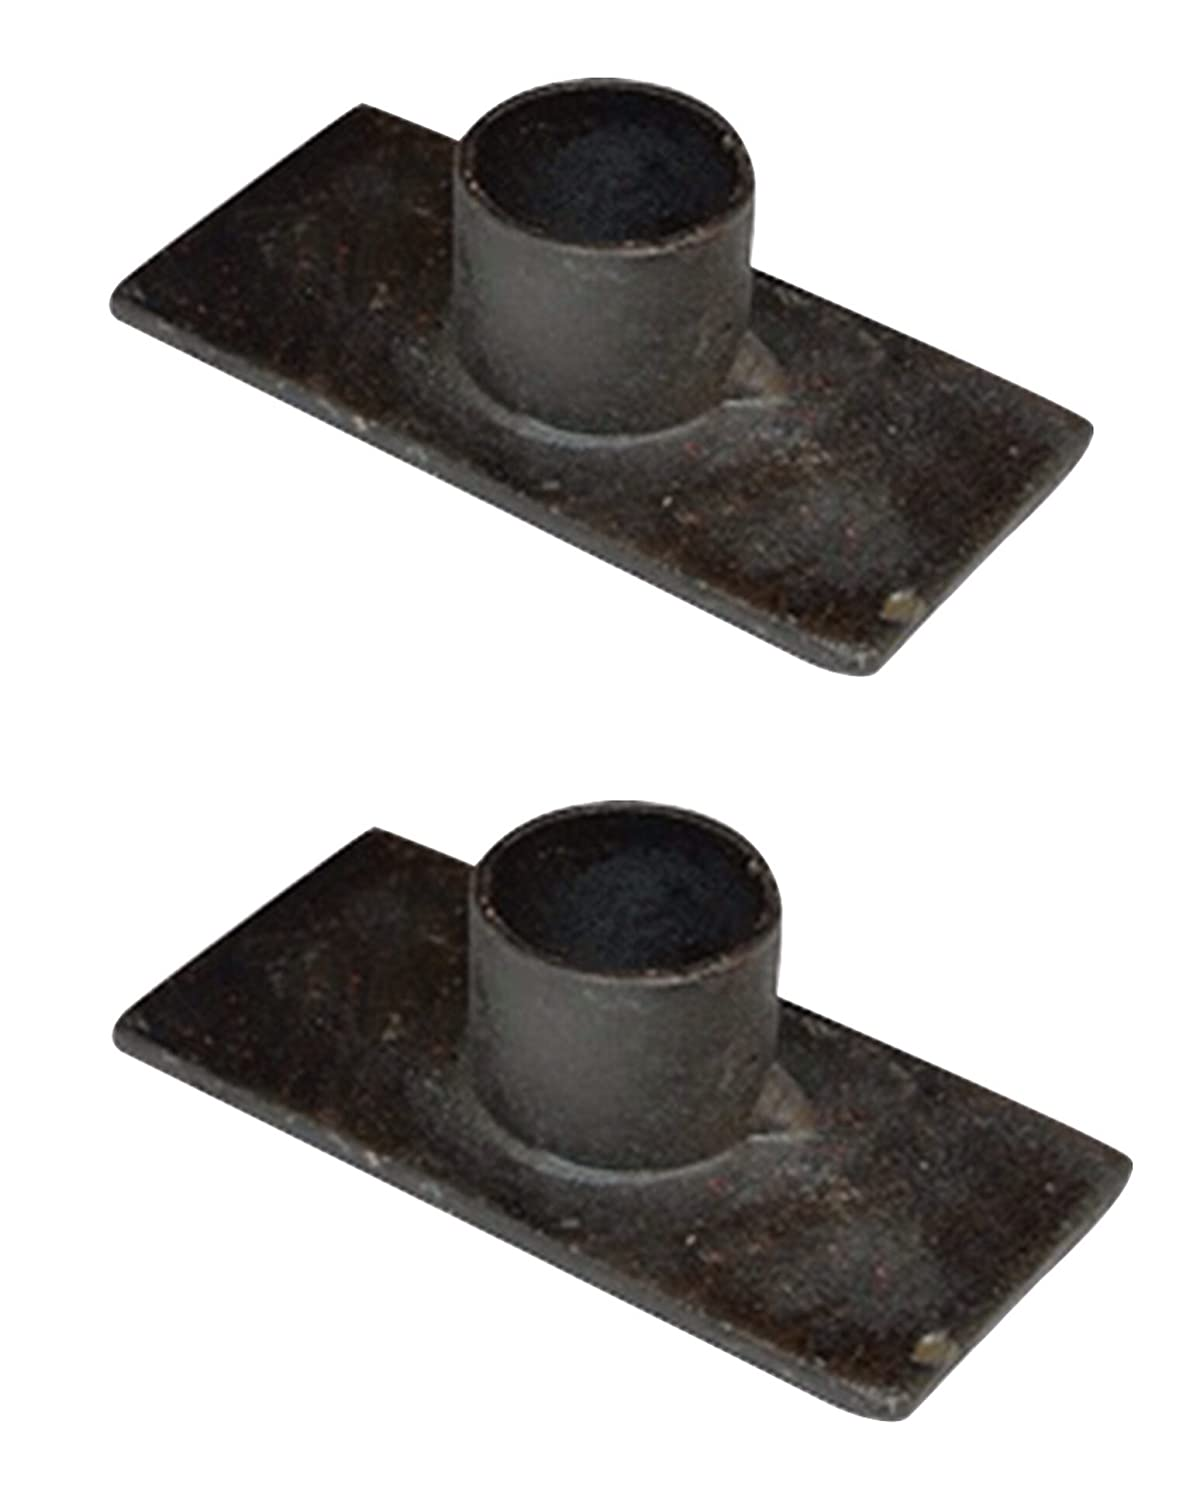 shop amazon com candlestick holders